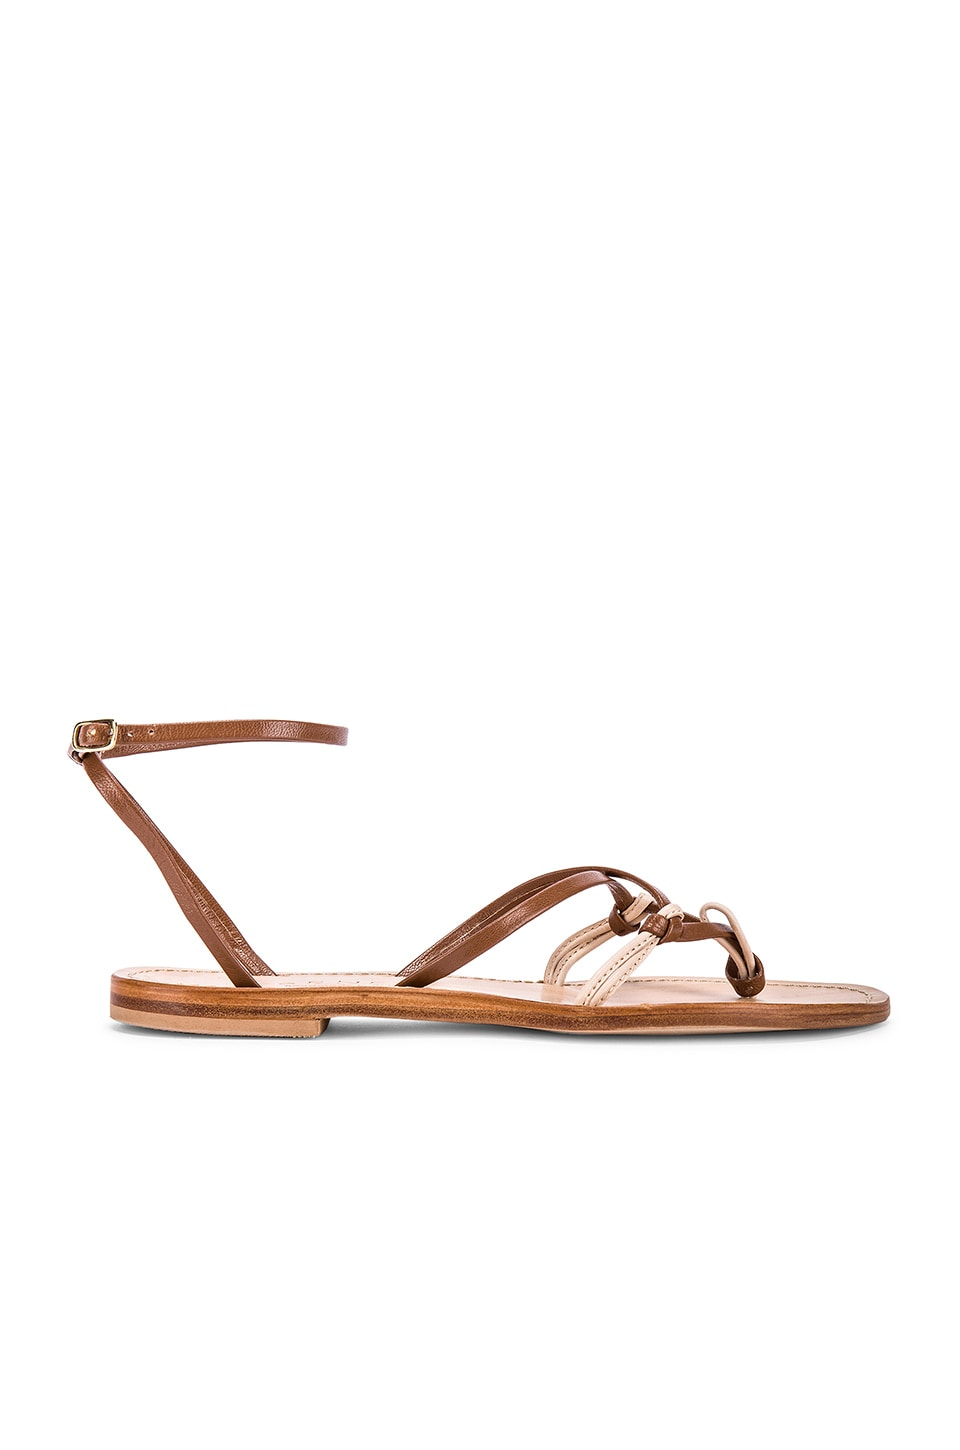 CoRNETTI Sofia Sandal in Umber & Natural